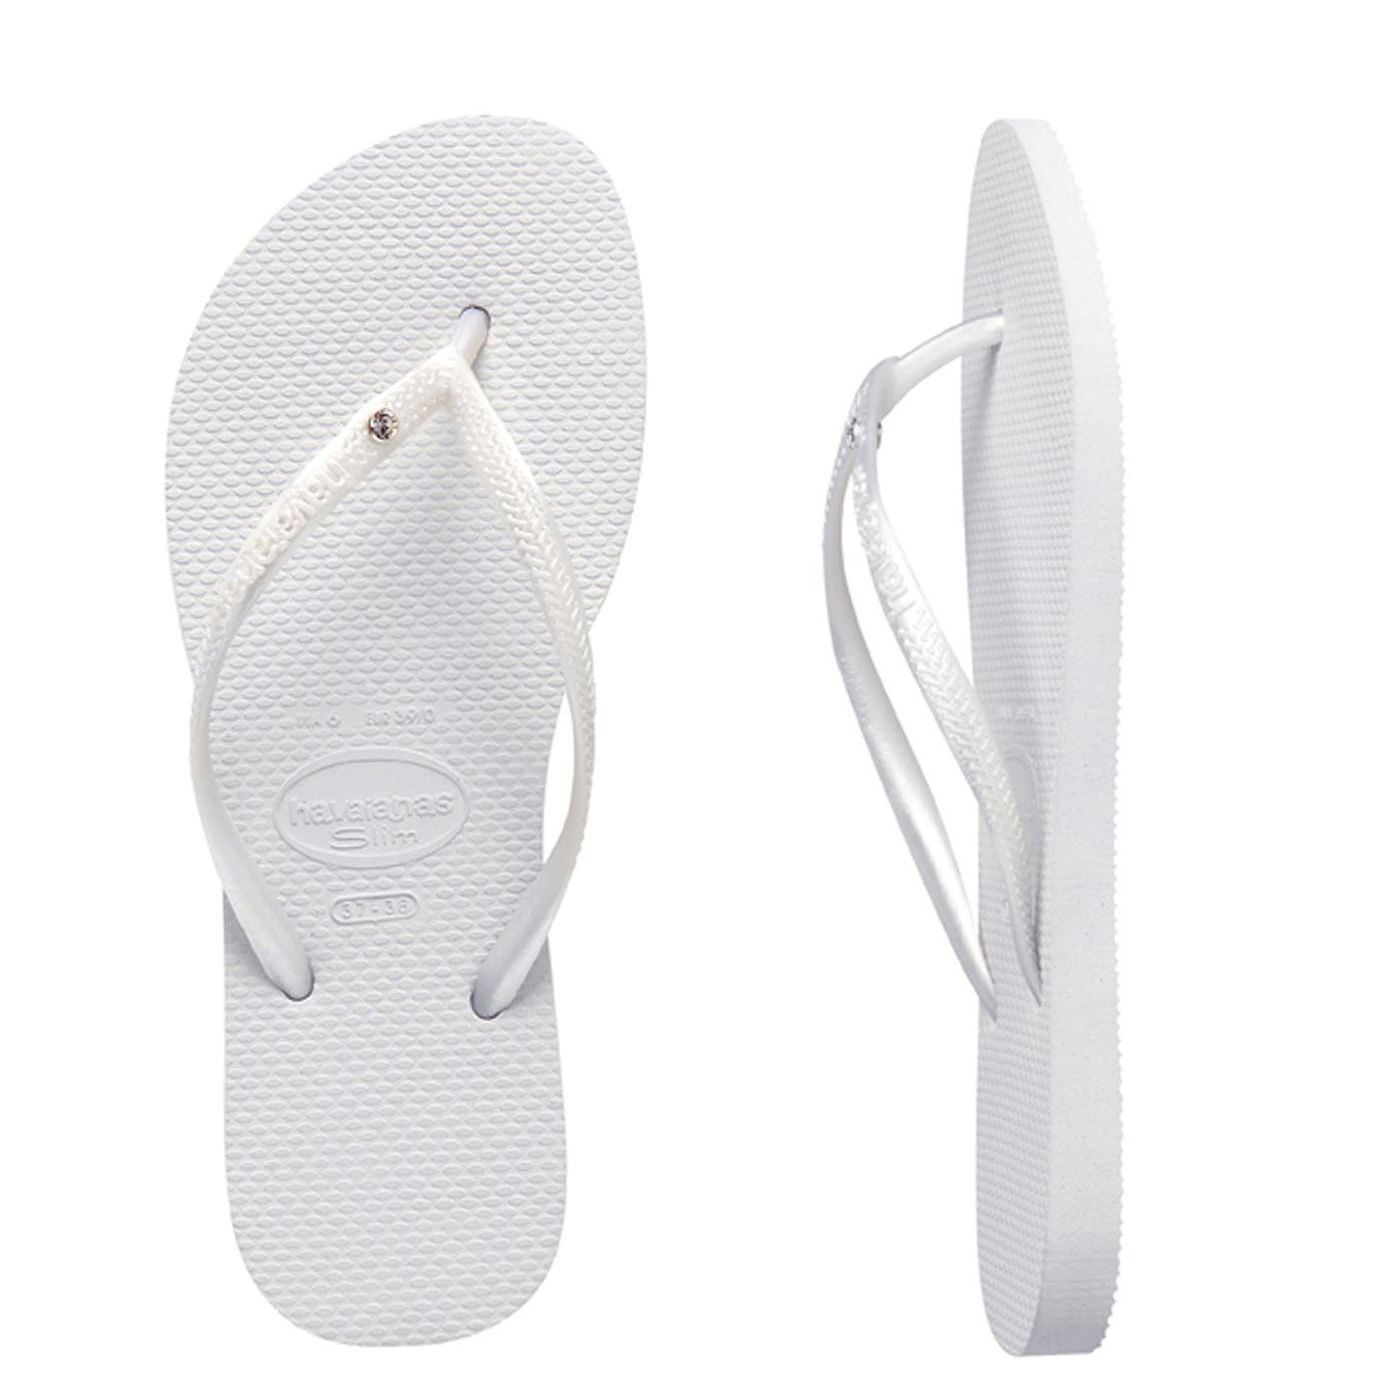 Havaianas-Slim-Crystal-Glamour-Women-039-s-Flip-Flops-Variety-of-Colors-All-sizes